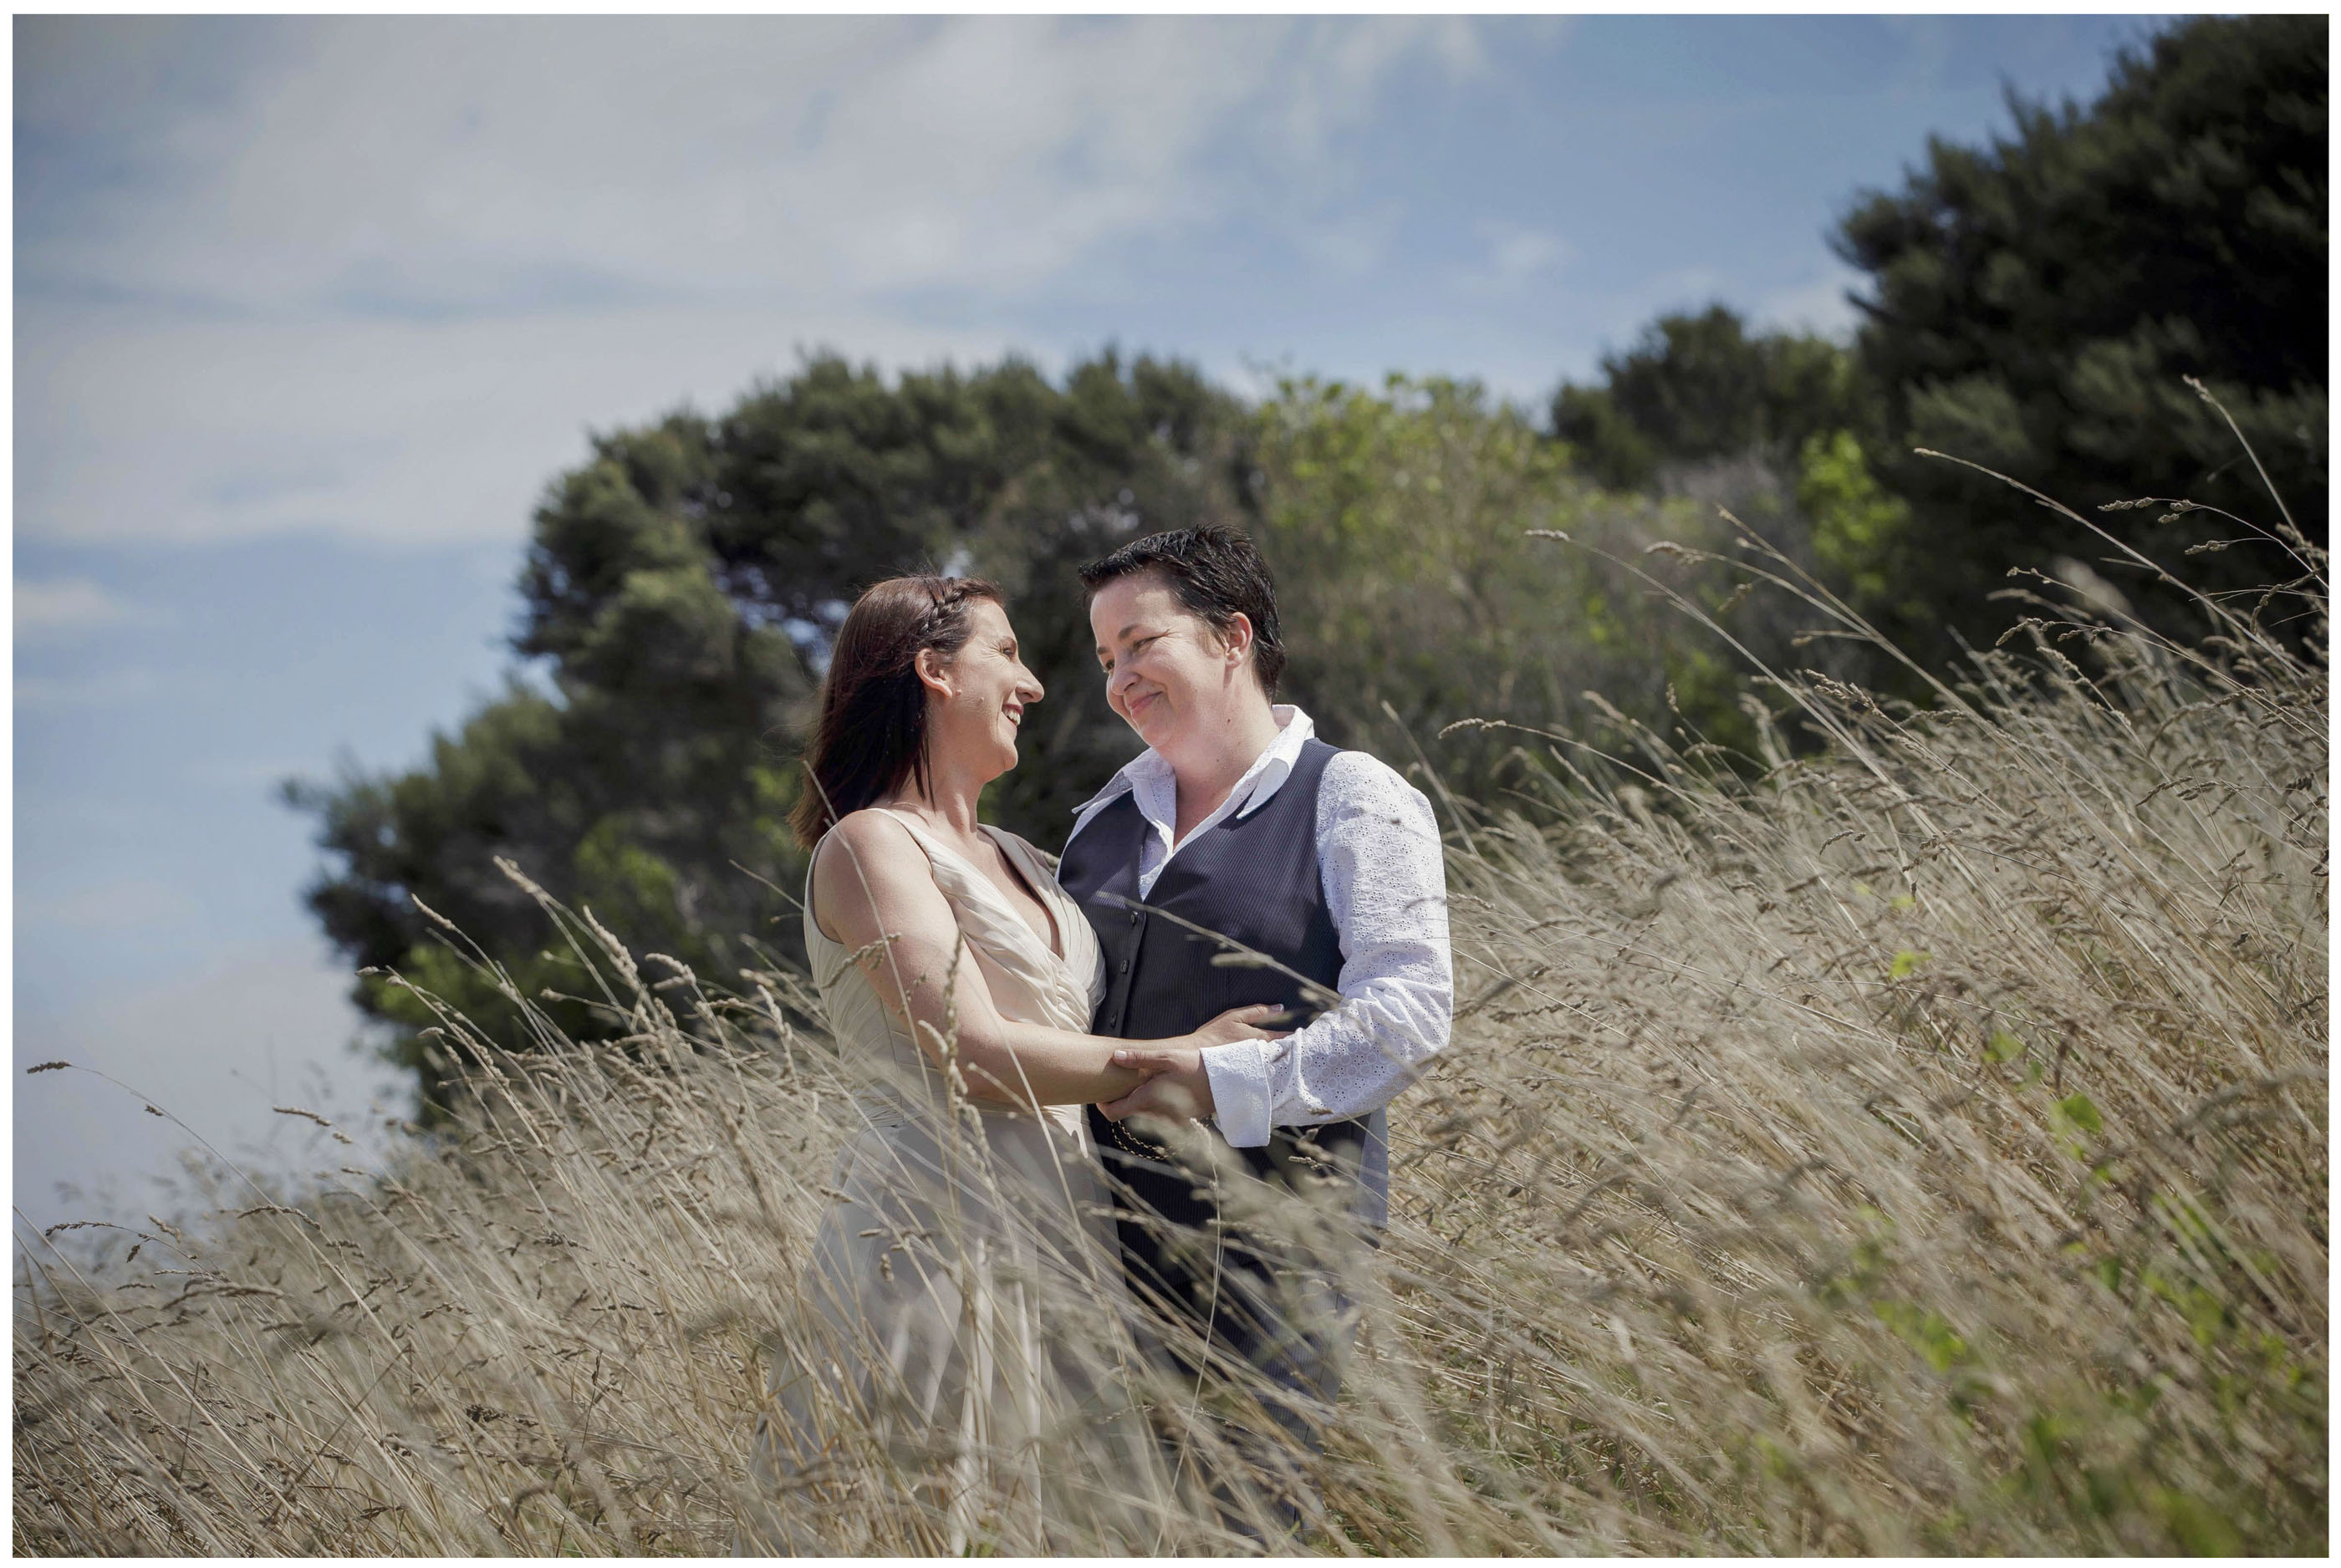 Mudbrick Waiheke Island wedding photo by Chris Loufte www.theweddingphotographer.co.nz